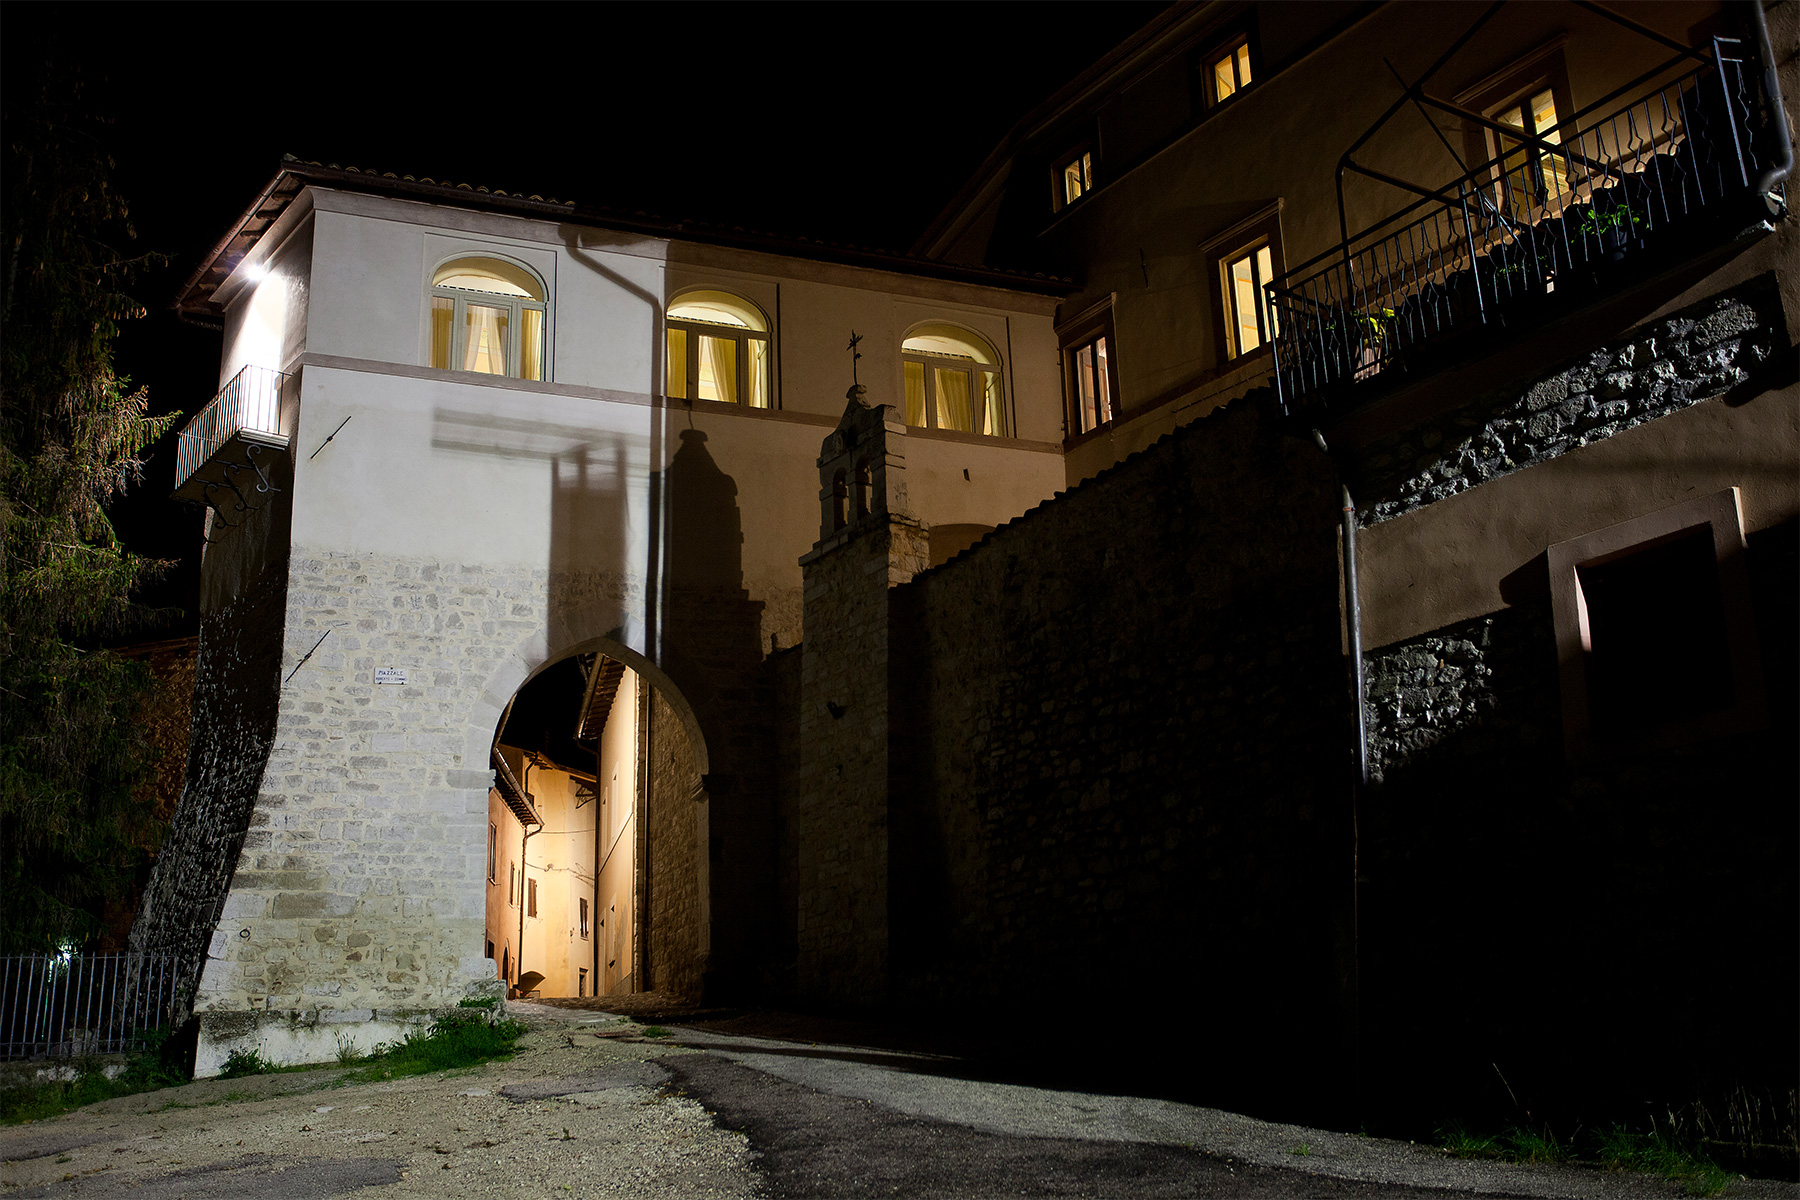 Single Family Home for Sale at Wonderful renovated historic building Norcia Perugia, 06047 Italy